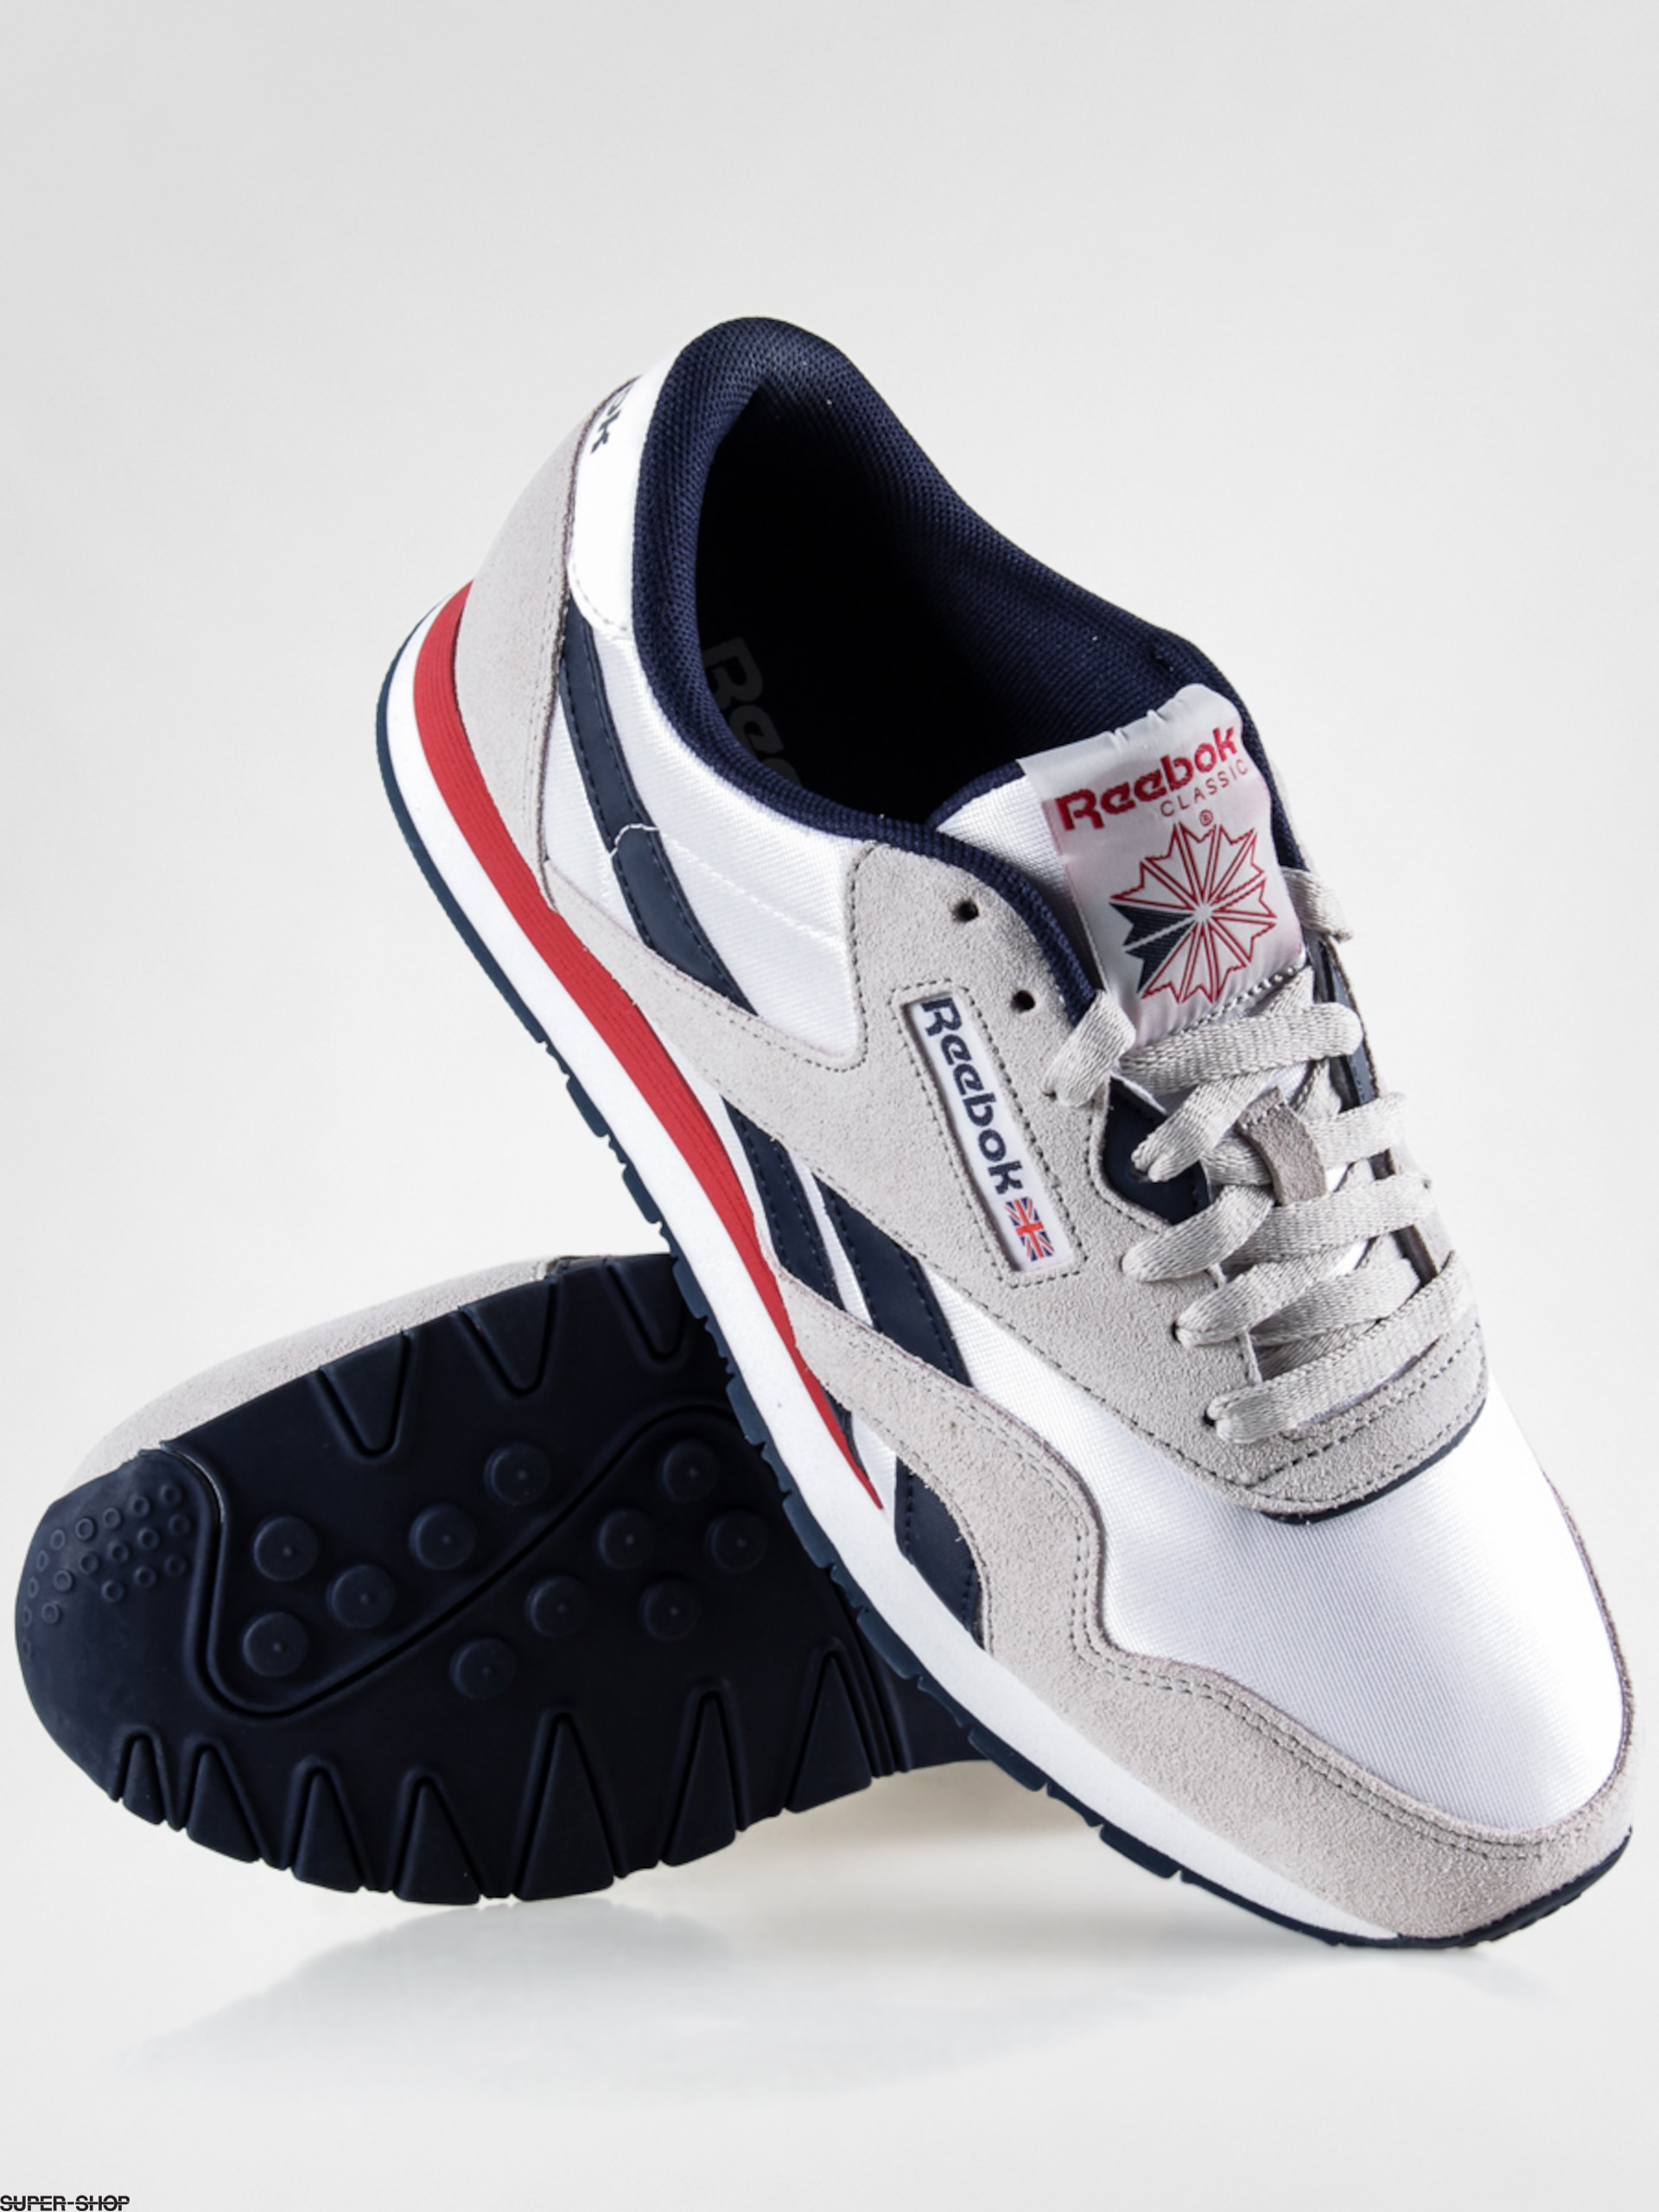 Reebok Shoes CL Nylon SP (white steel navy red) 2d047465efb2